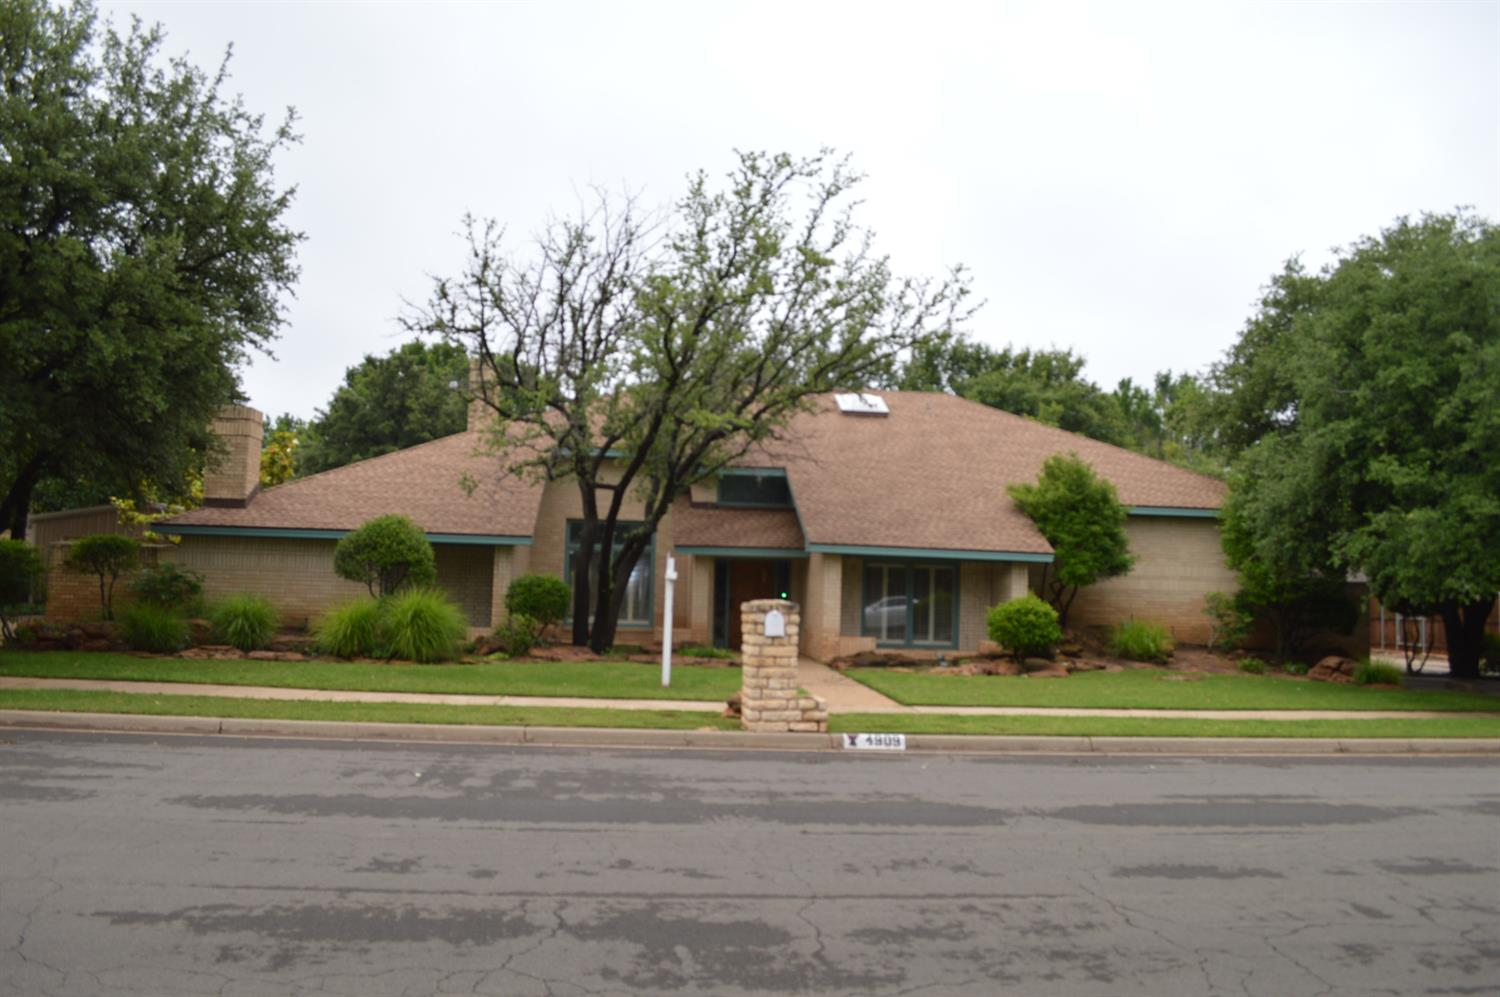 One of Lubbock 4 Bedroom Homes for Sale at 4909 77th Street